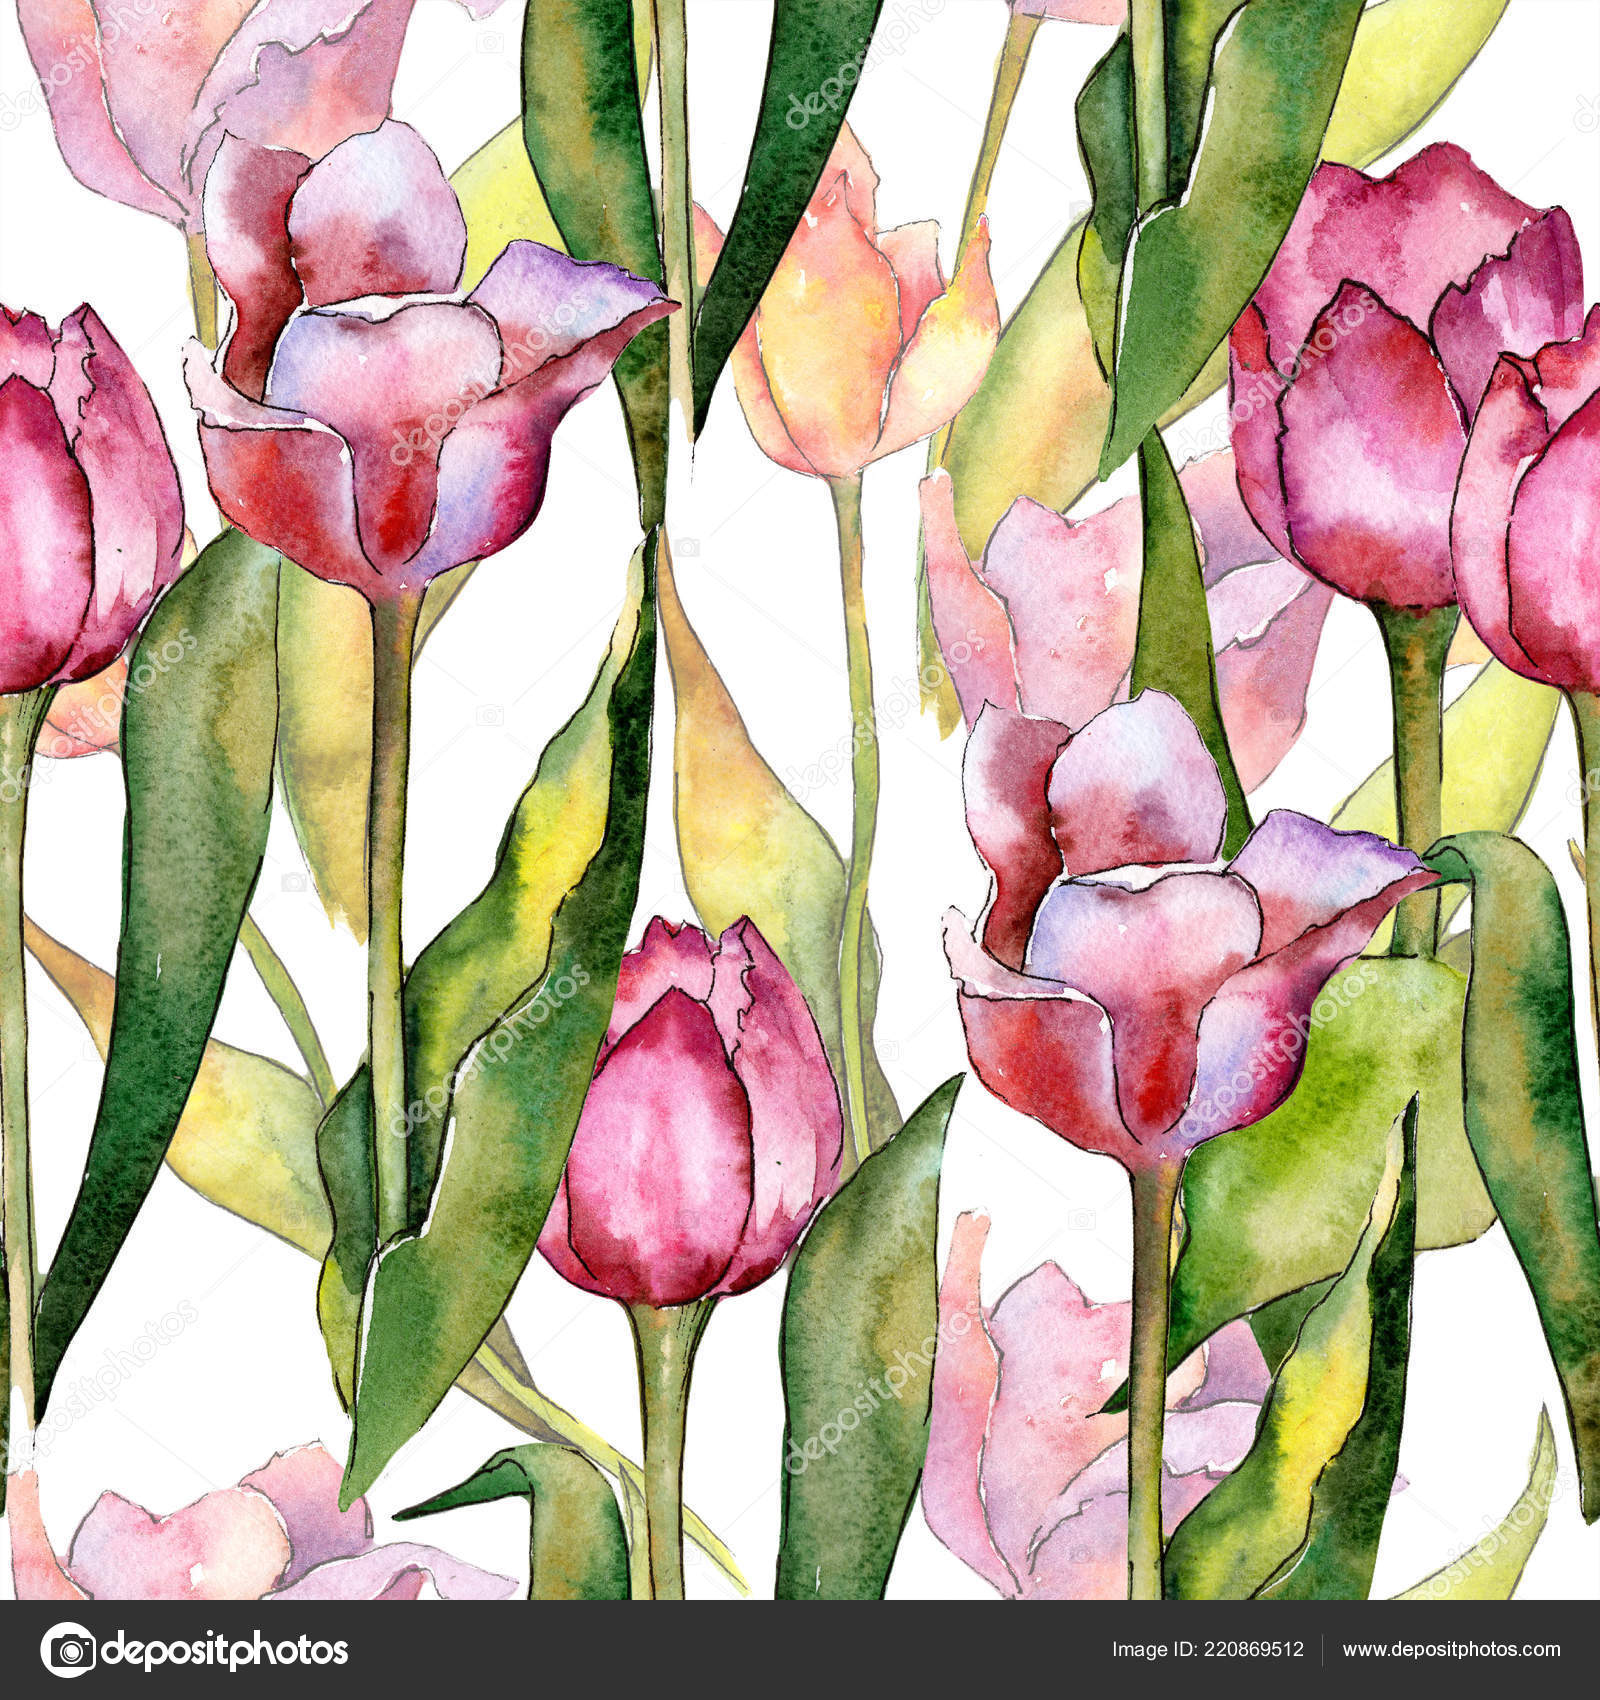 Tulips Floral Watercolor Painting Art Print by DJR